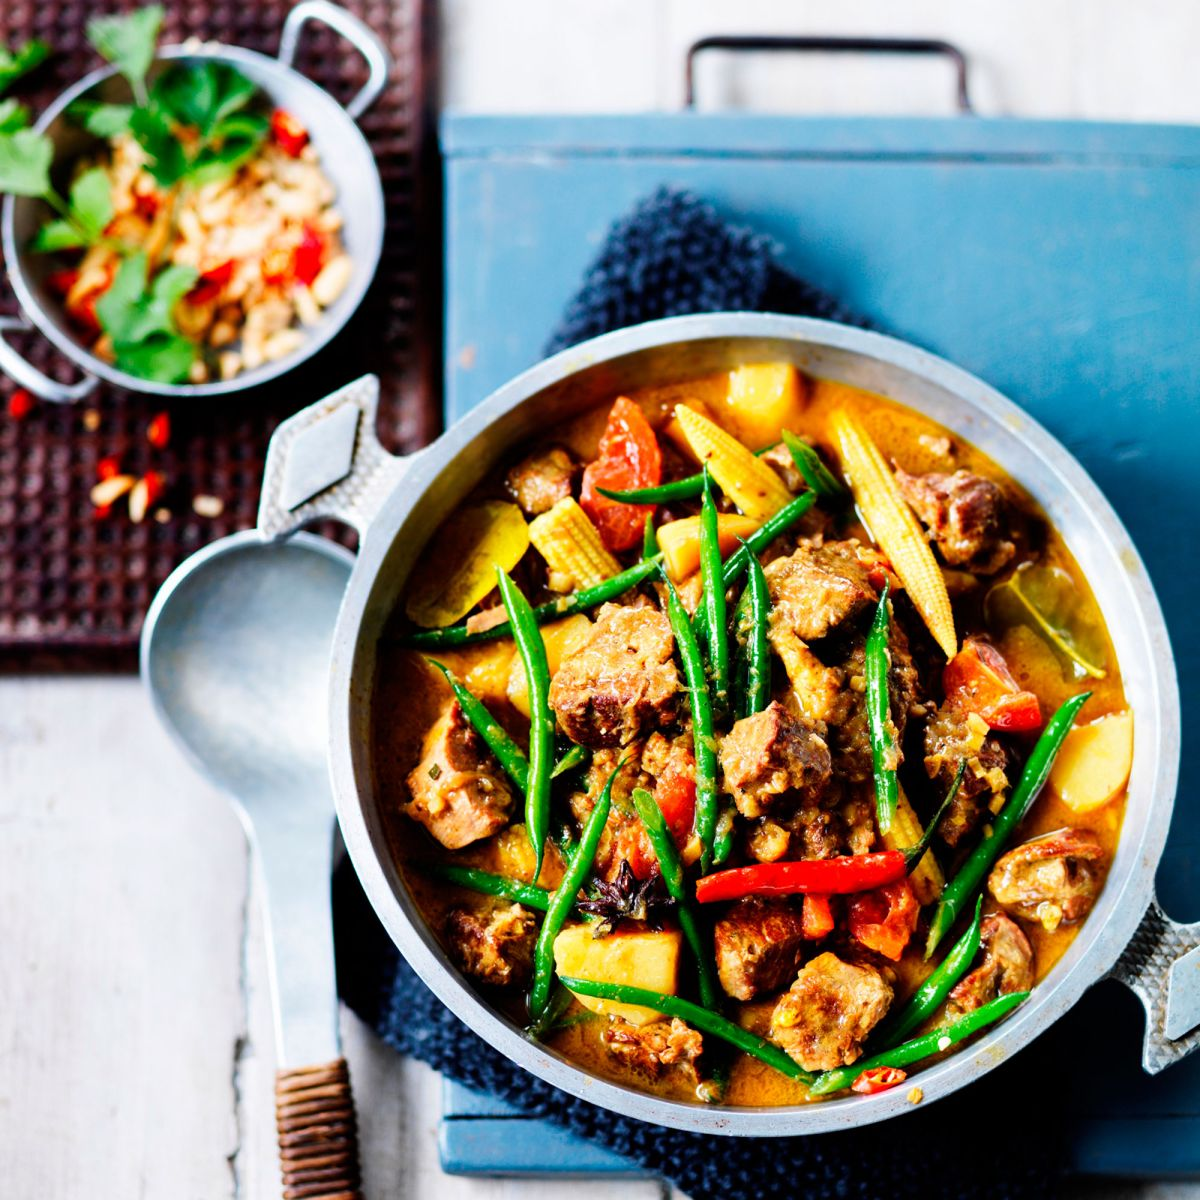 Indulge yourself on this hearty lamb massaman curry that's great on a Saturday night